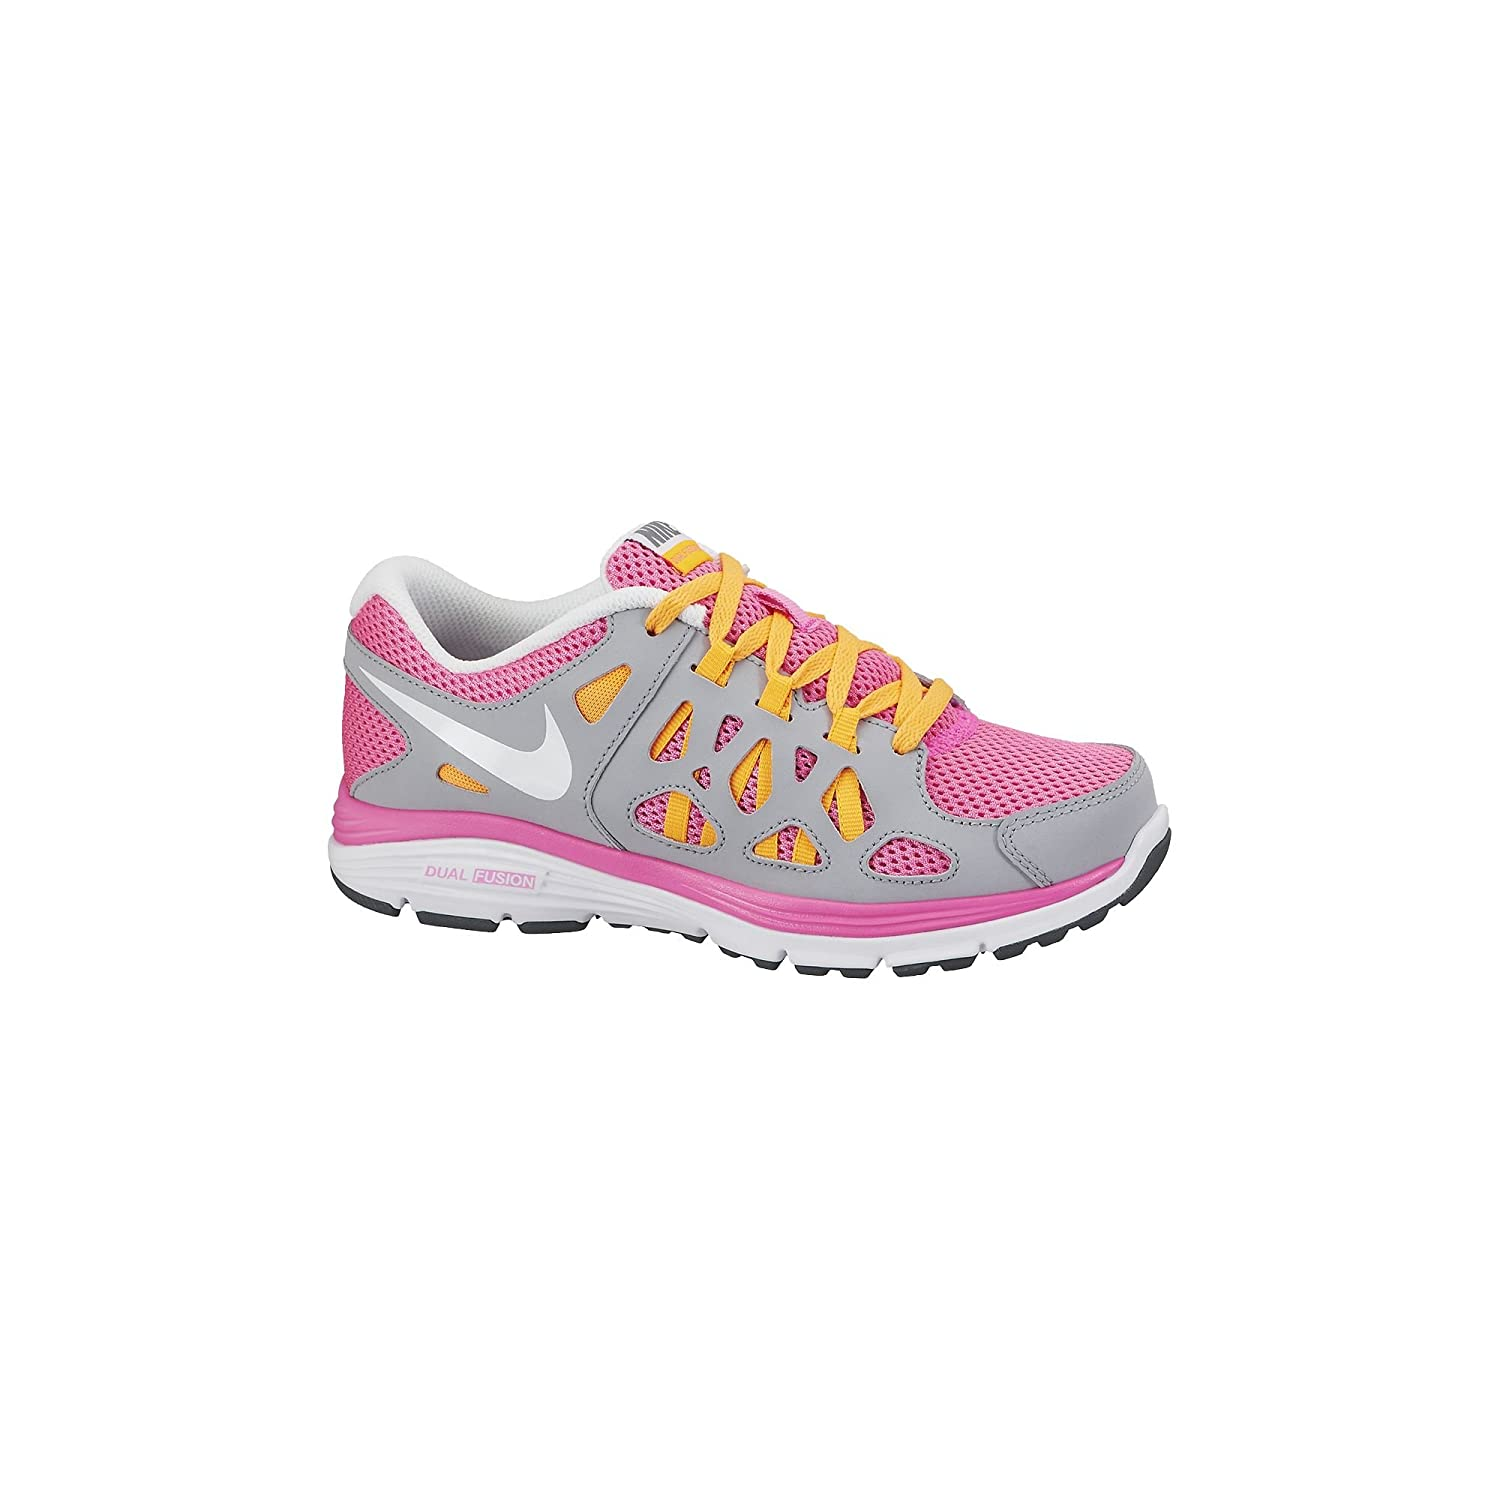 d9f19c3d8bed Amazon.com  Nike Kids Dual Fusion Run 2 (GS) Pnk Glw White Wlf Gry Atmc Mng  Running Shoe 7 Kids US  Shoes